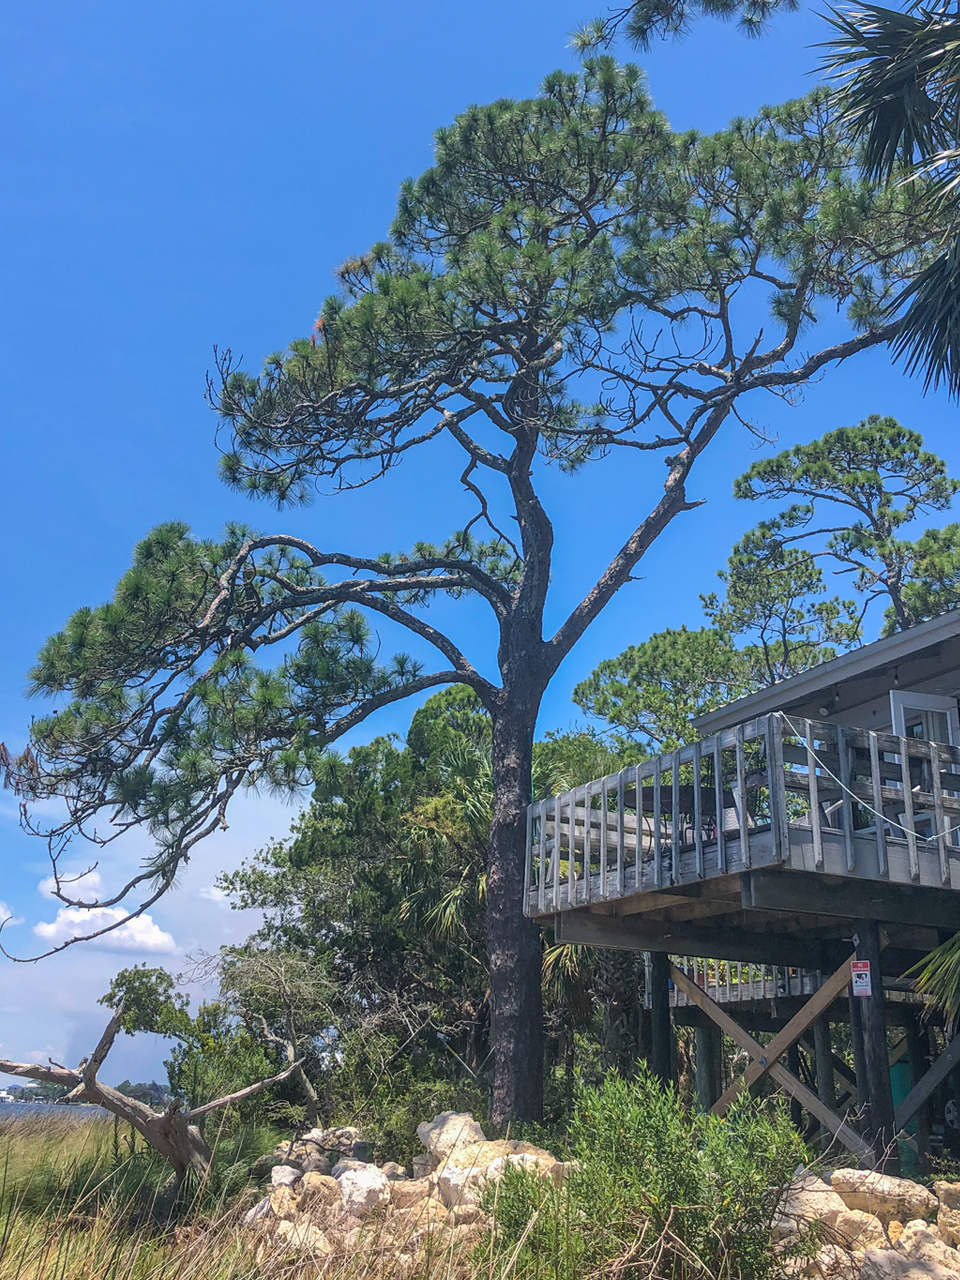 Notice the branch structure of this coastal pine. It has survived numerous hurricanes and tropical storms and has formed branches that distribute the wind load throughout the tree.